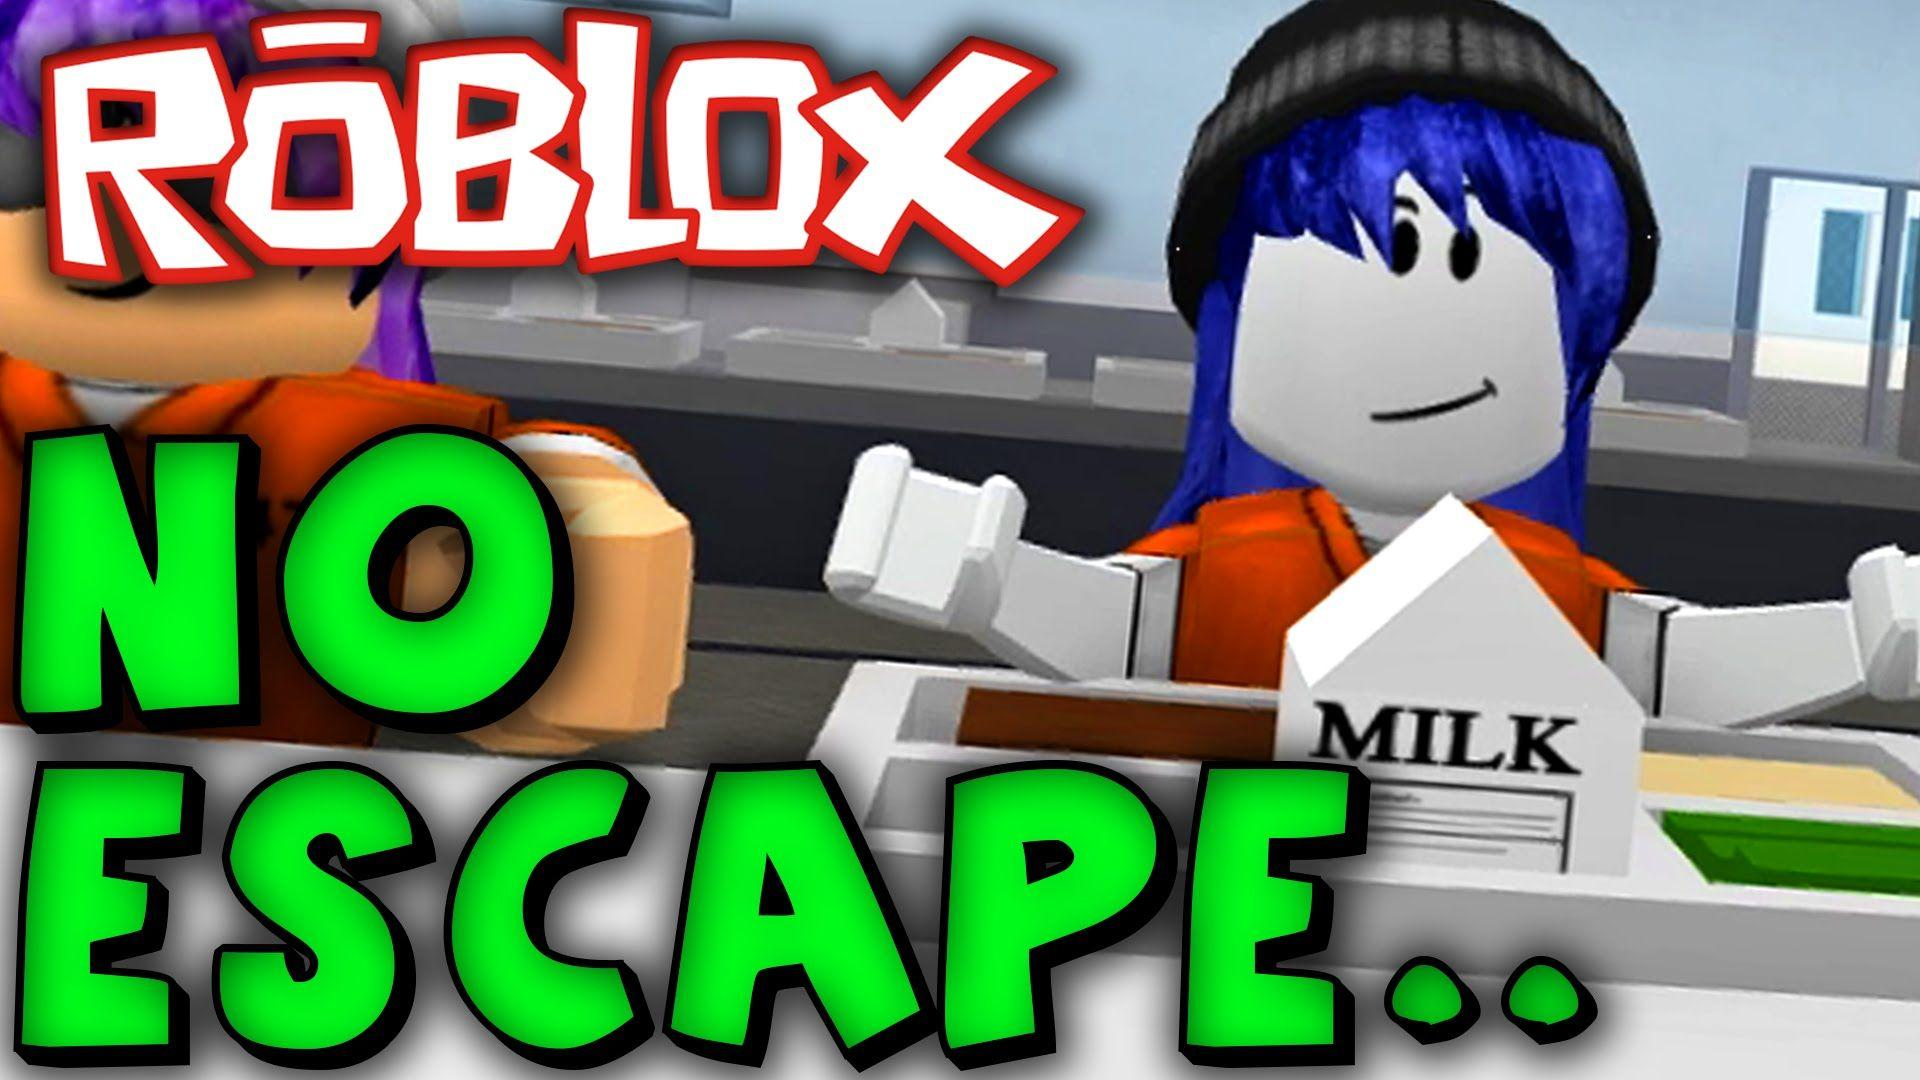 Prison Life Roblox Wallpapers Wallpaper Cave Roblox New Free Items 2019 Halloween